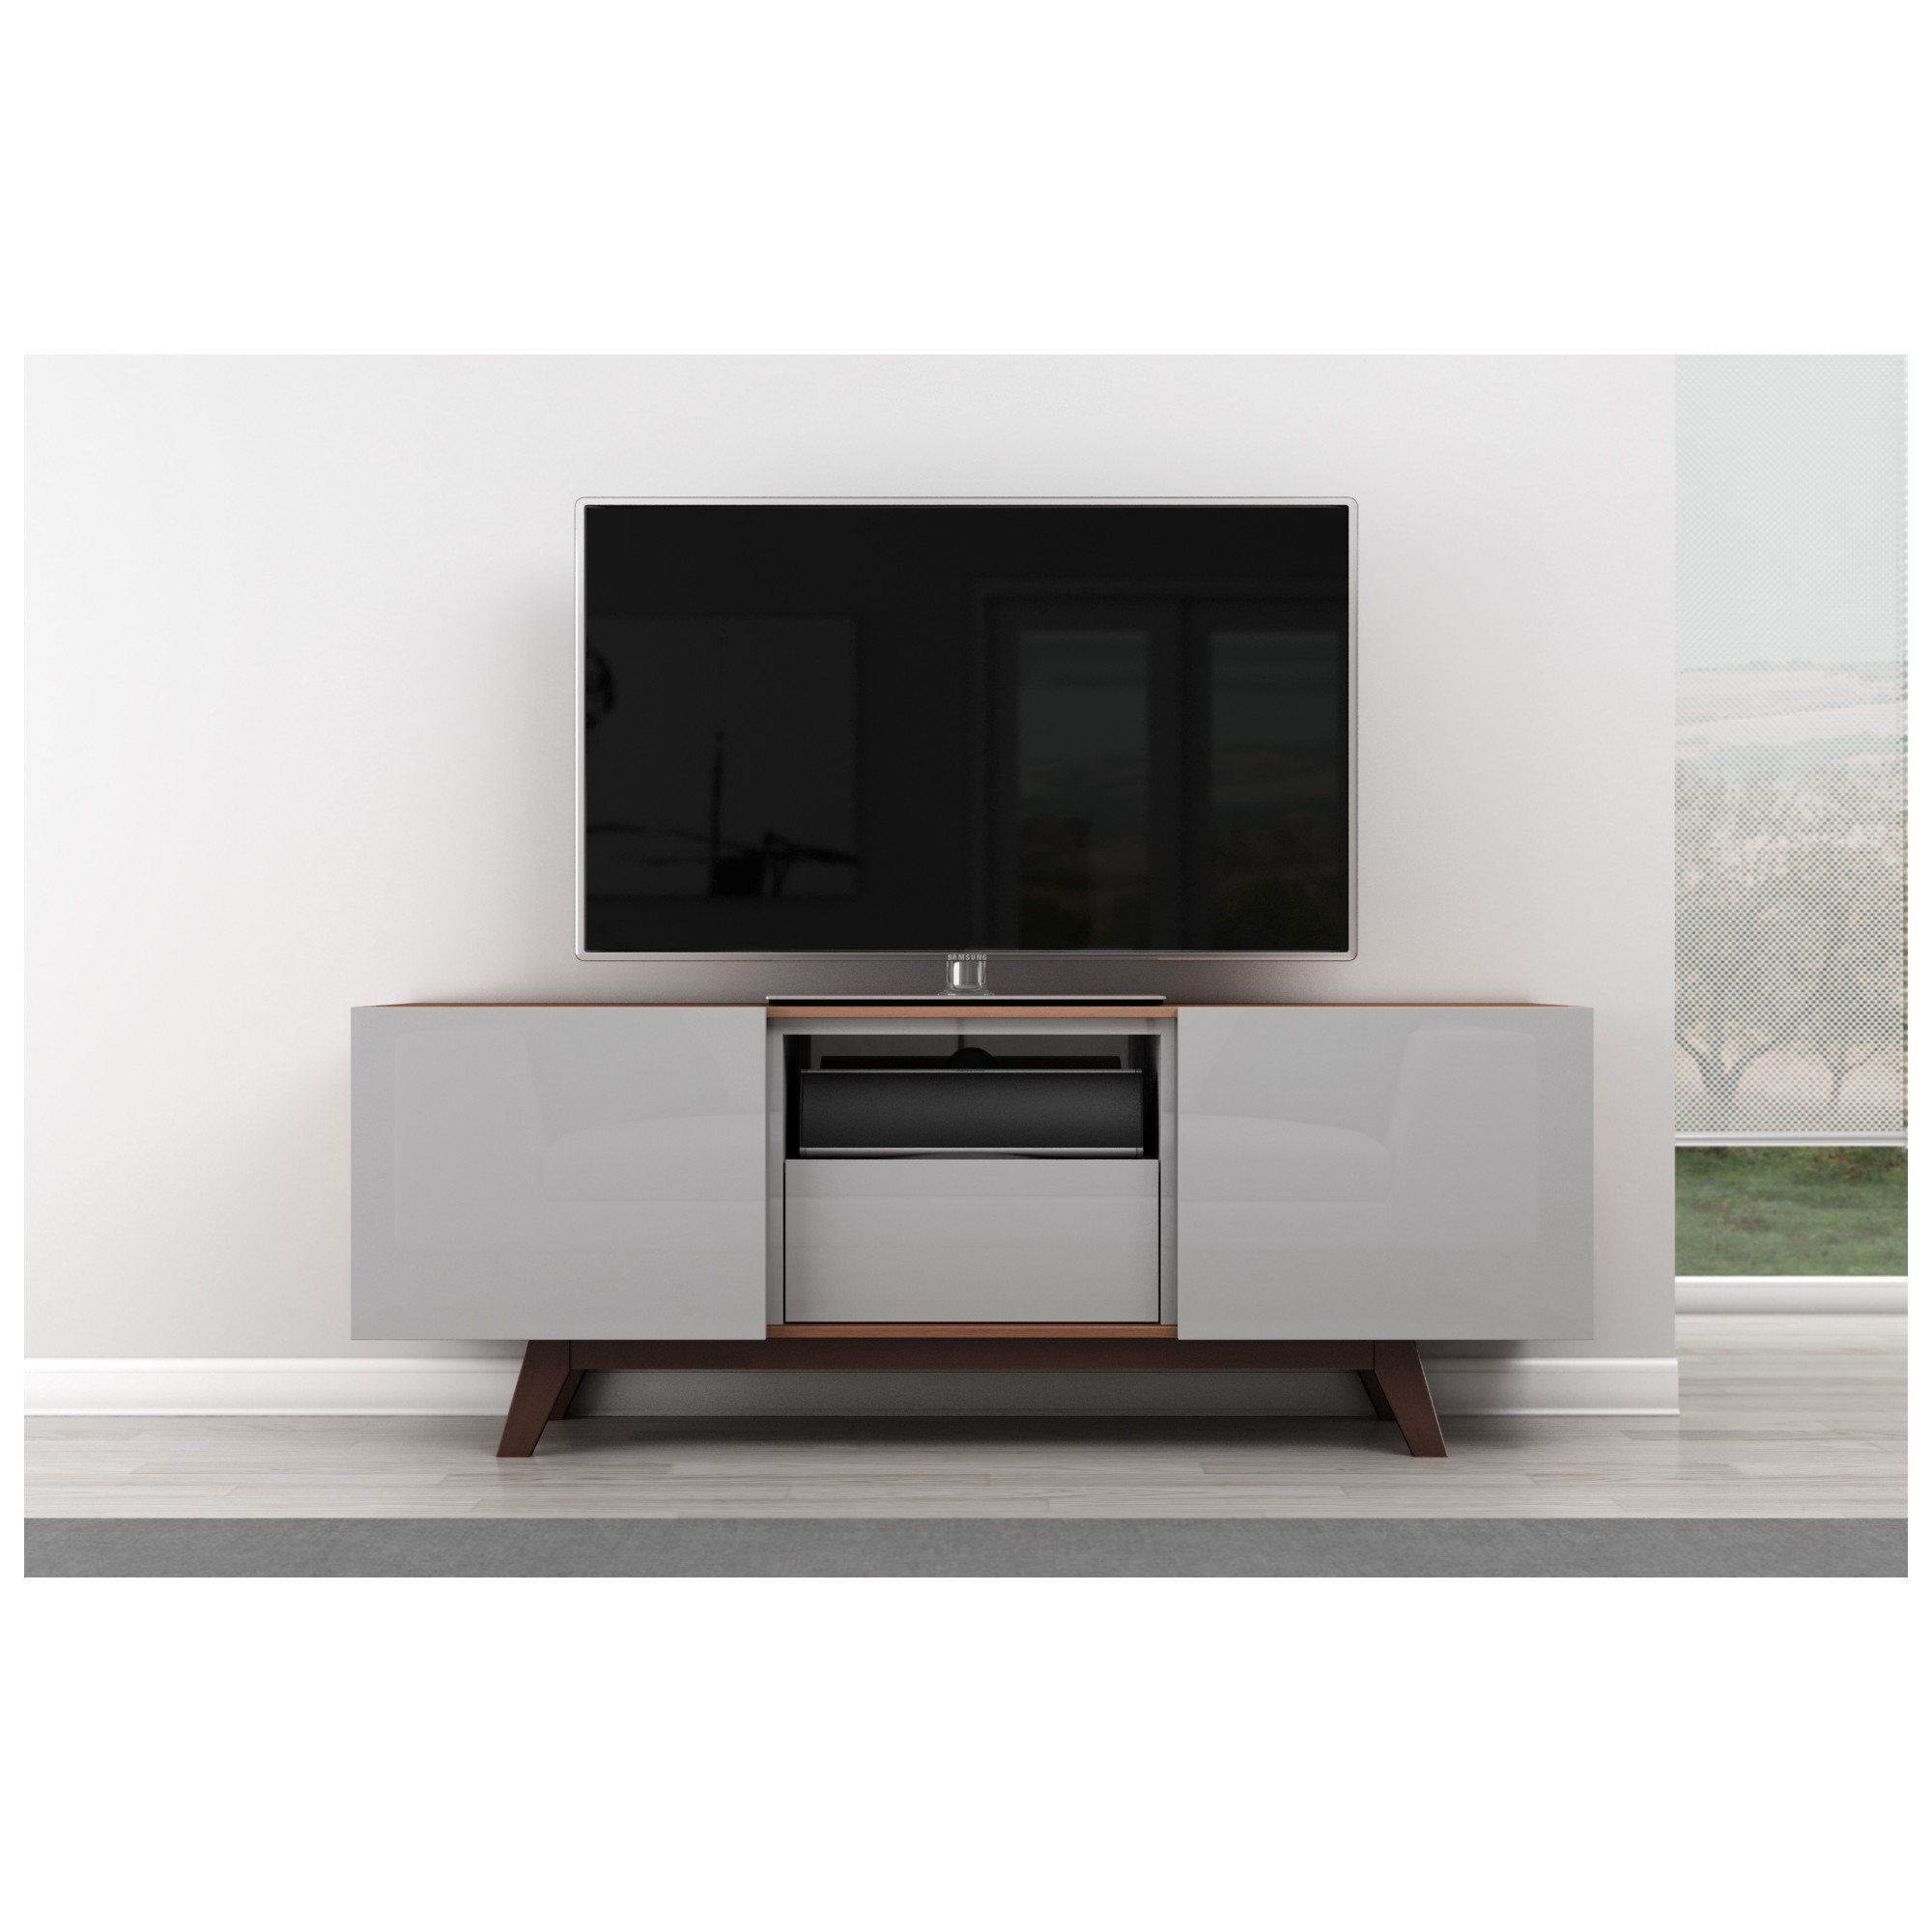 Furnitech Ft70r Ft70r 70 Quot Tv Stand Modern Media Cabinet W